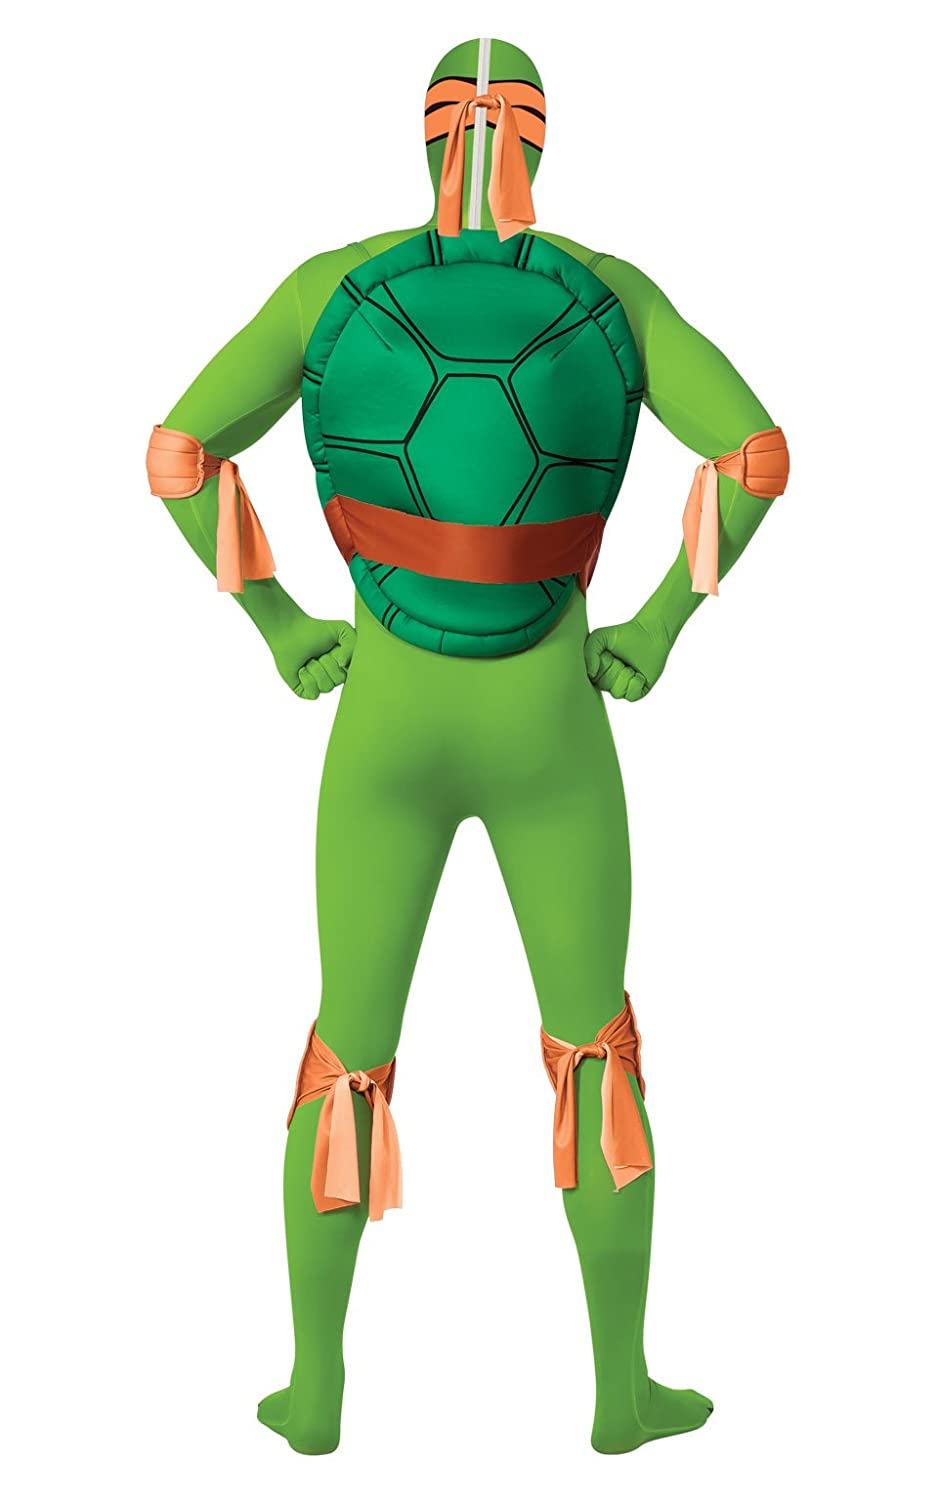 Amazon.com Rubieu0027s Costume Menu0027s Michelangelo 2Nd Skin Adult Costume with Removable Shell Clothing  sc 1 st  Amazon.com & Amazon.com: Rubieu0027s Costume Menu0027s Michelangelo 2Nd Skin Adult ...